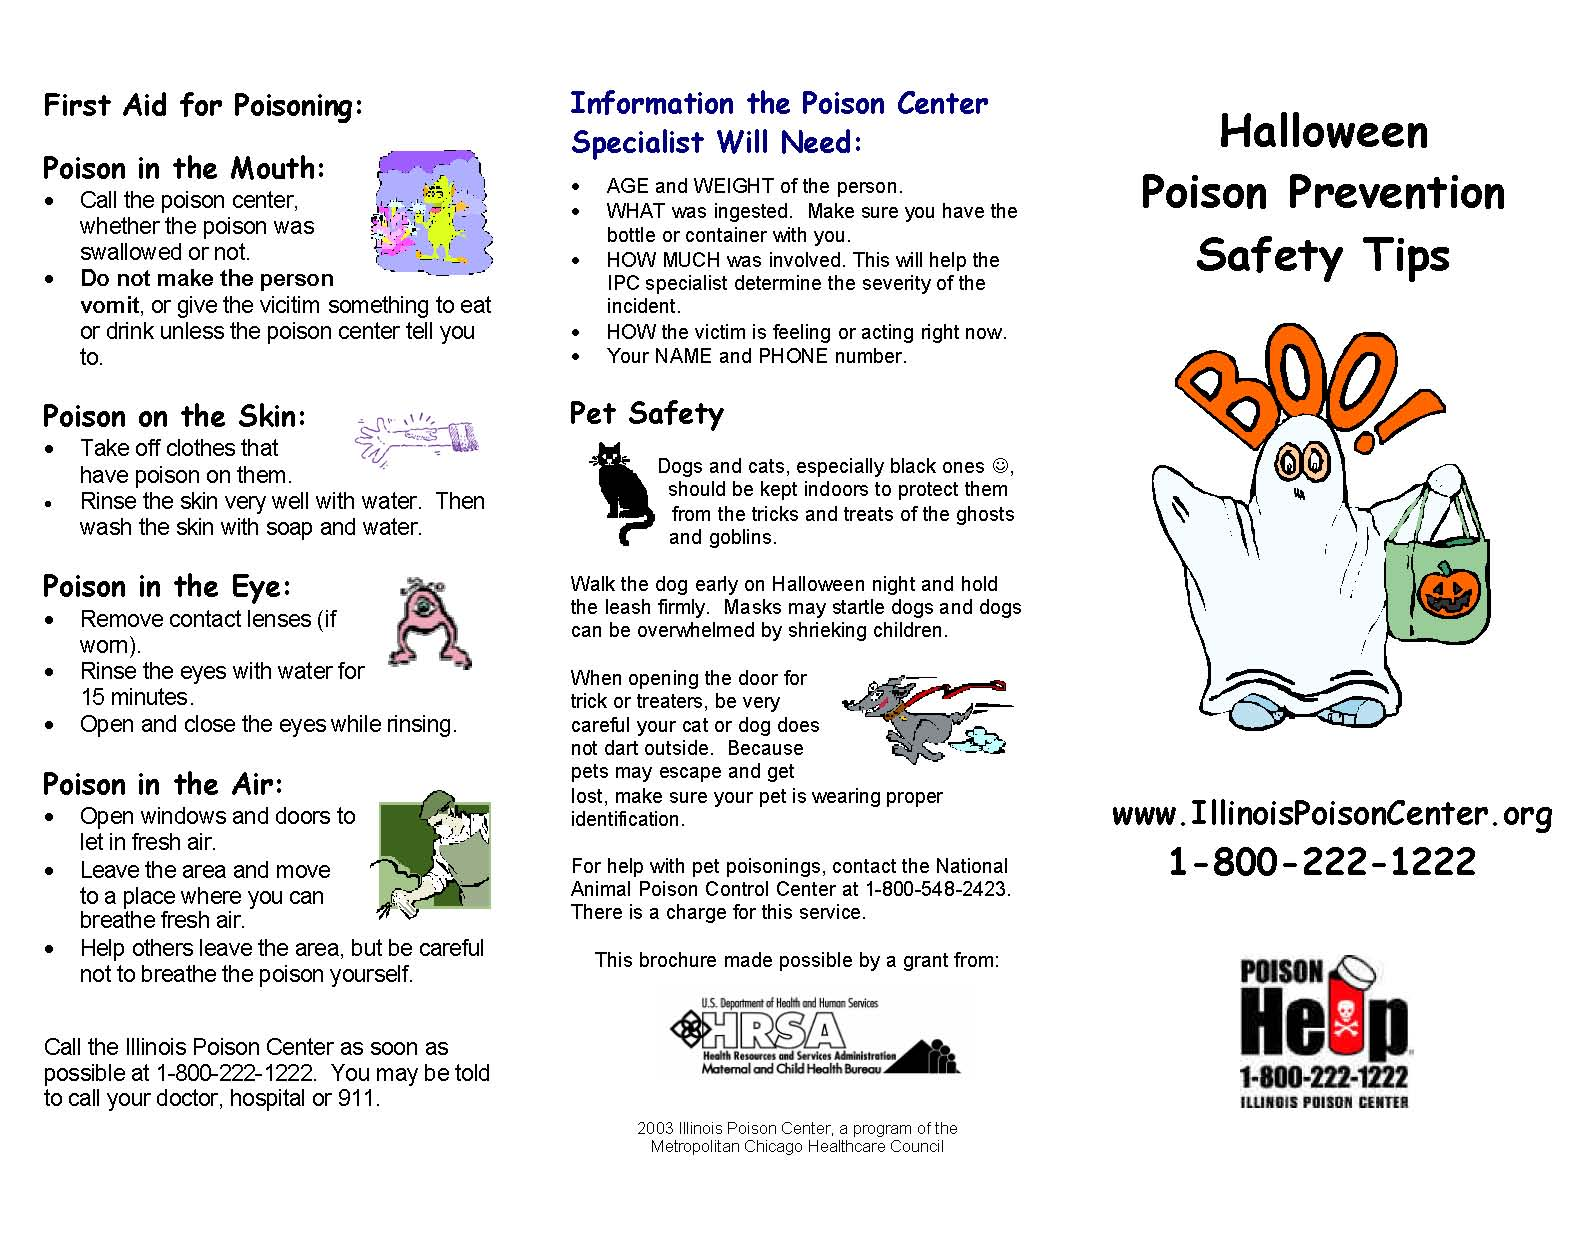 Health Safety Tips Tips For Halloween Safety